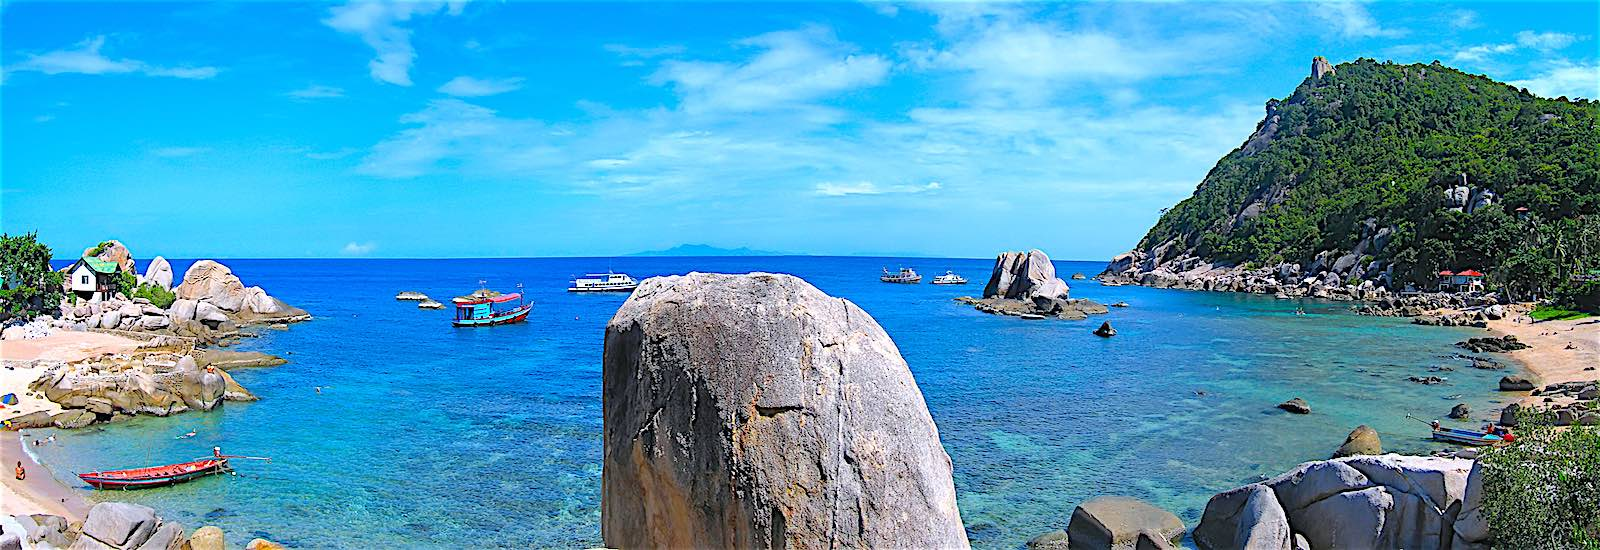 Tanote Beach & Bay Koh Tao Panoramic View